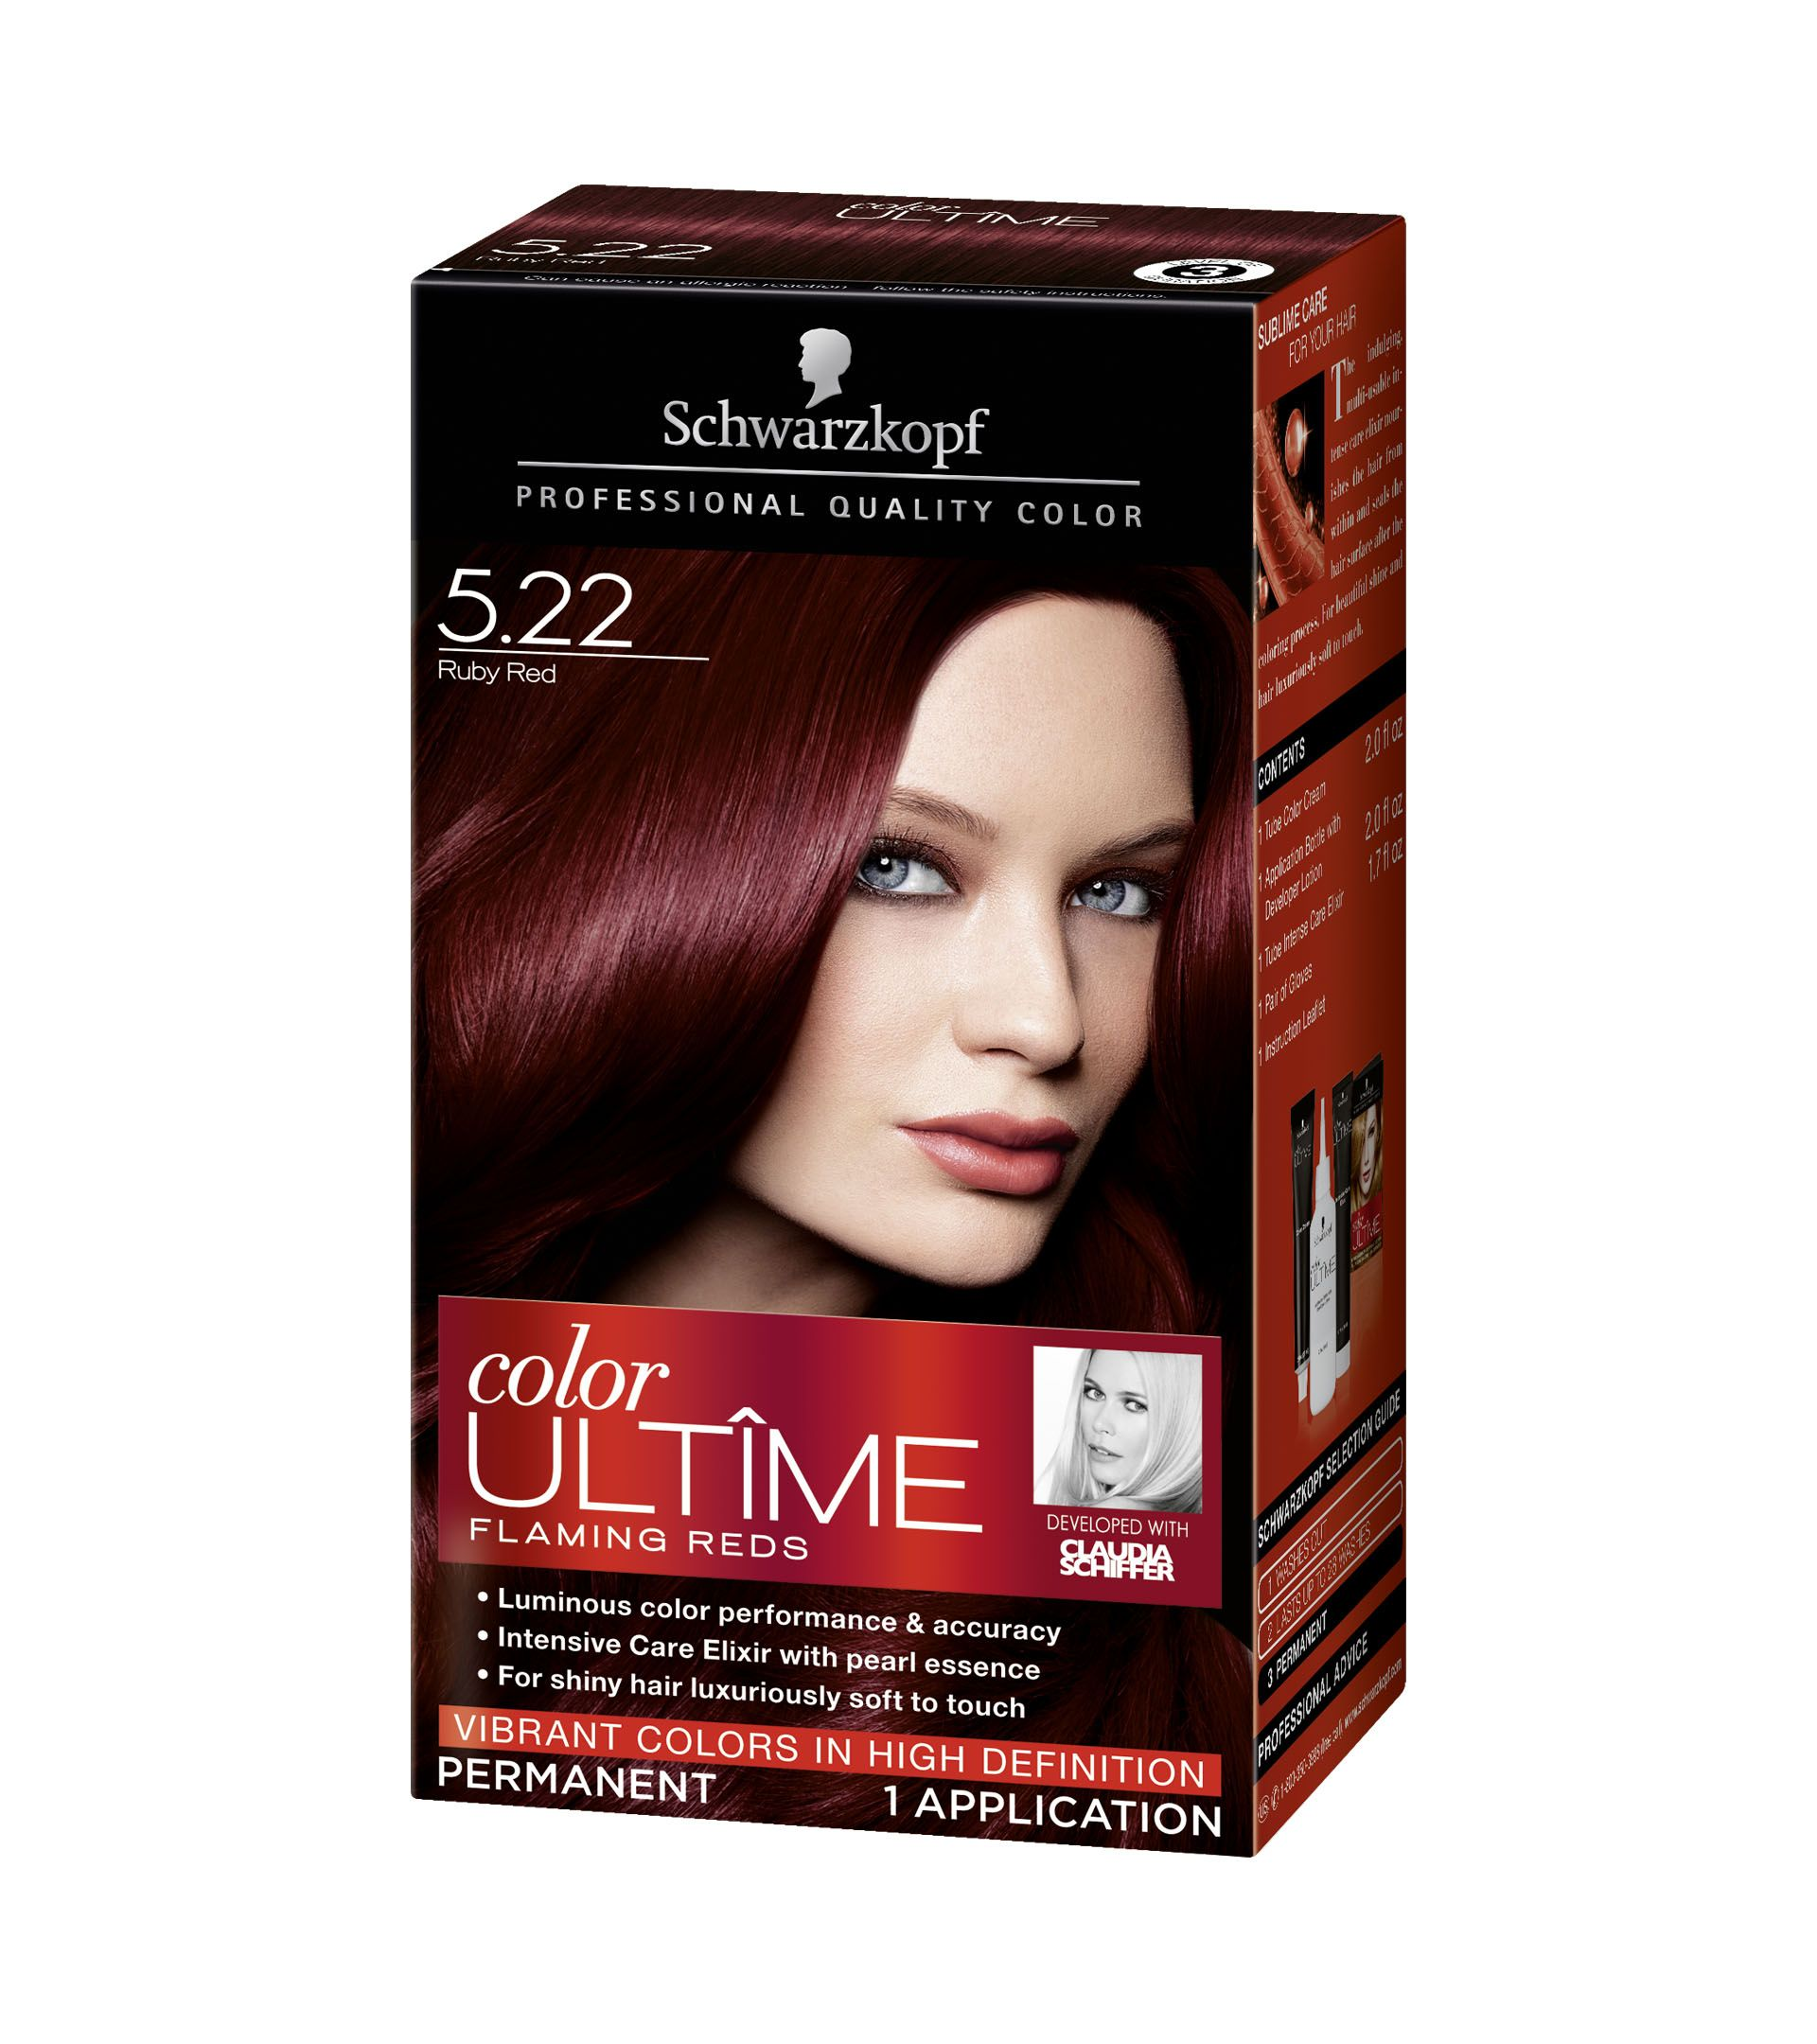 picture Cheap Thrill: The Best At-Home Hair Color Kits For Red CarpetResults